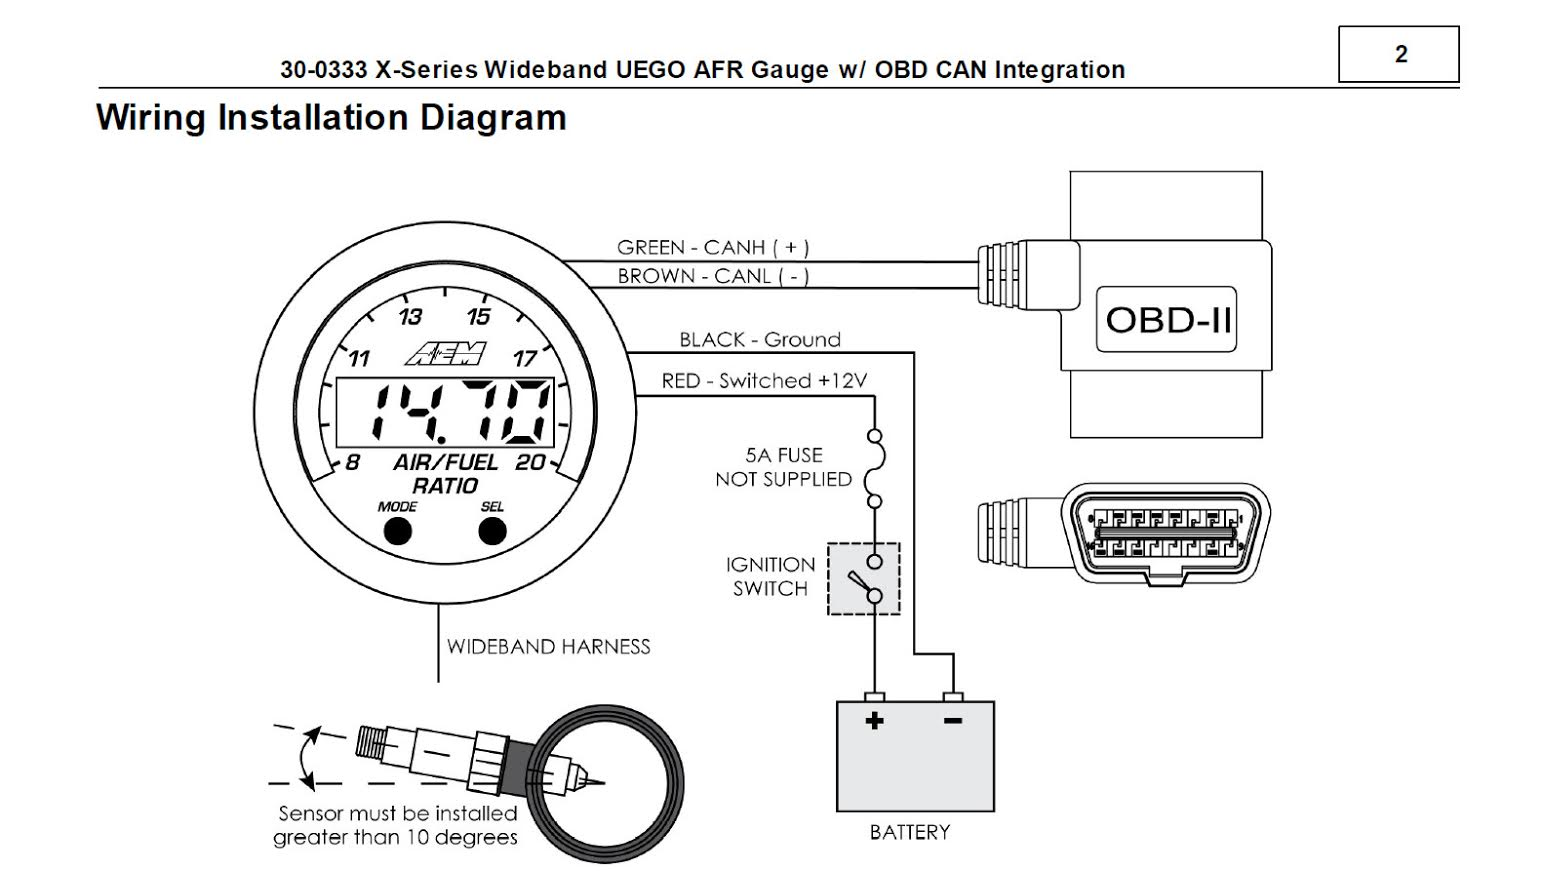 dolphin gauges wiring diagram 1999 ez go txt tested aems new x series obdii wideband w hp tuners on